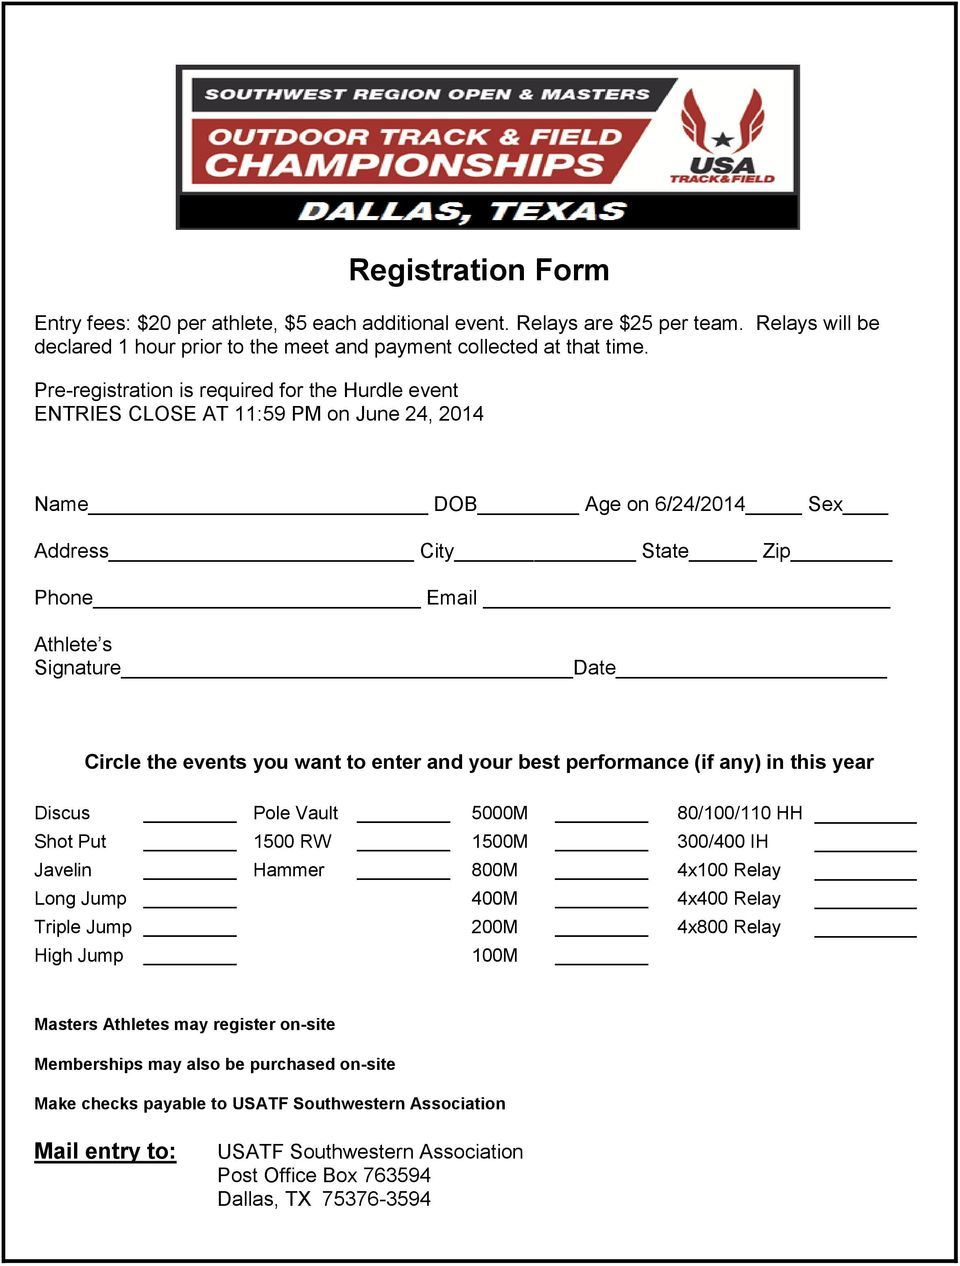 Pre-registration is required for the Hurdle event ENTRIES CLOSE AT 11:59 PM on June 24, 2014 Name DOB Age on 6/24/2014 Sex Address City State Zip Phone Email Athlete s Signature Date Circle the